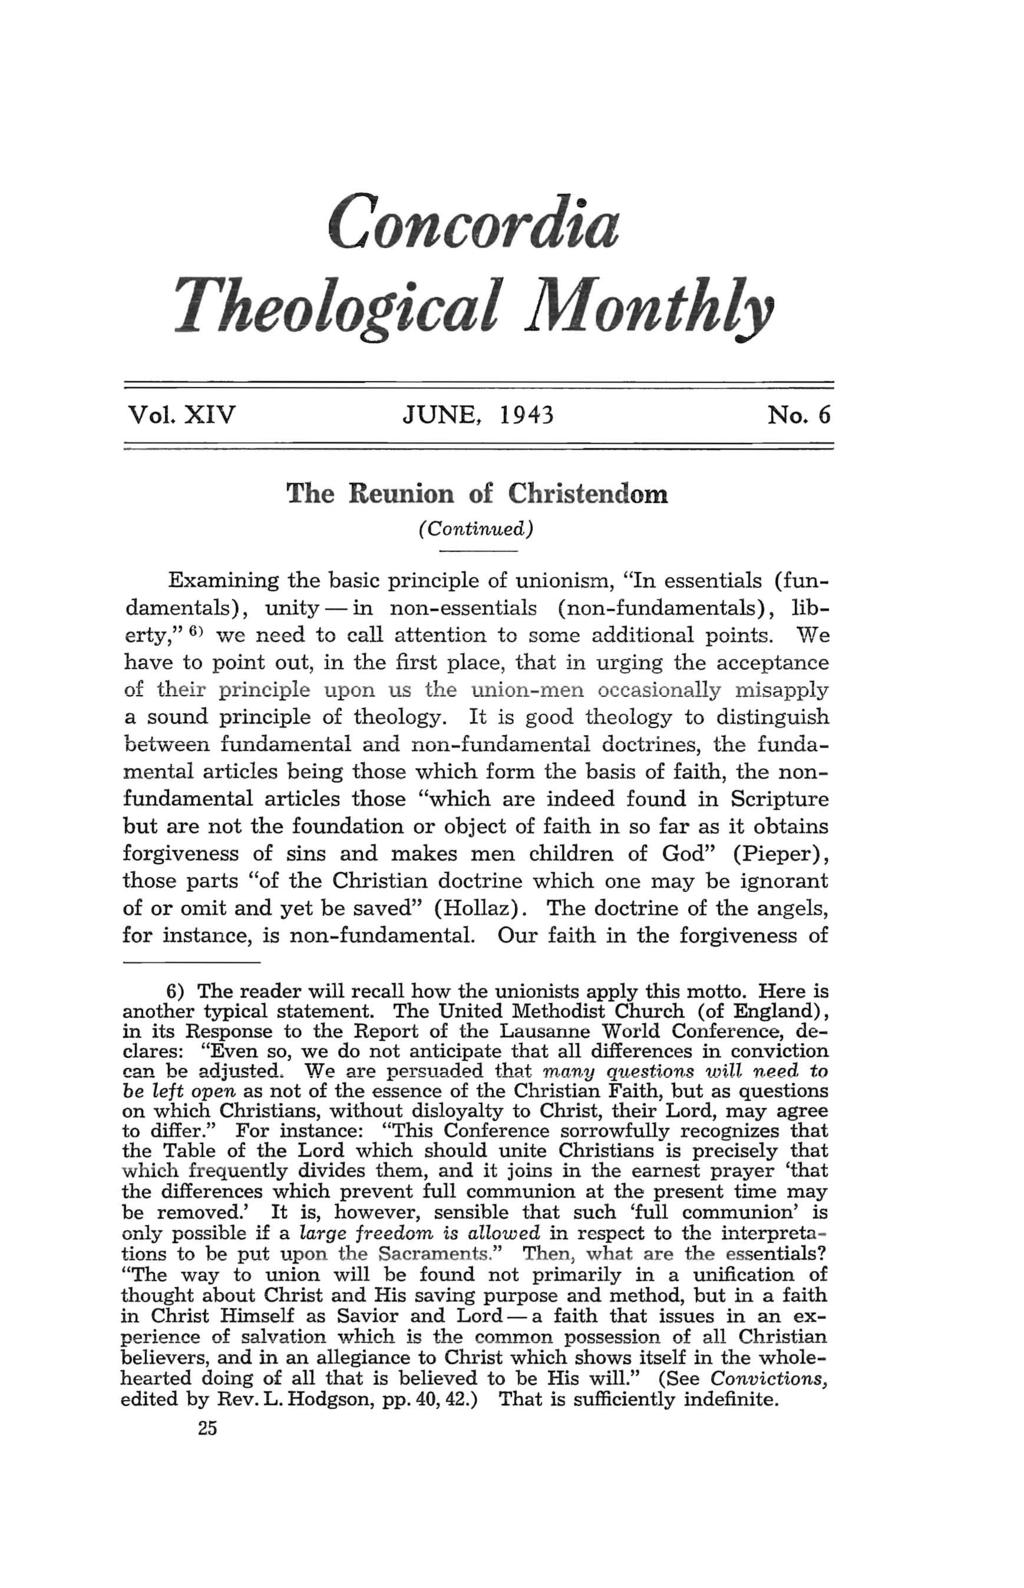 Concordia Theological Monthly Vol. XIV JUNE, 1943 No.